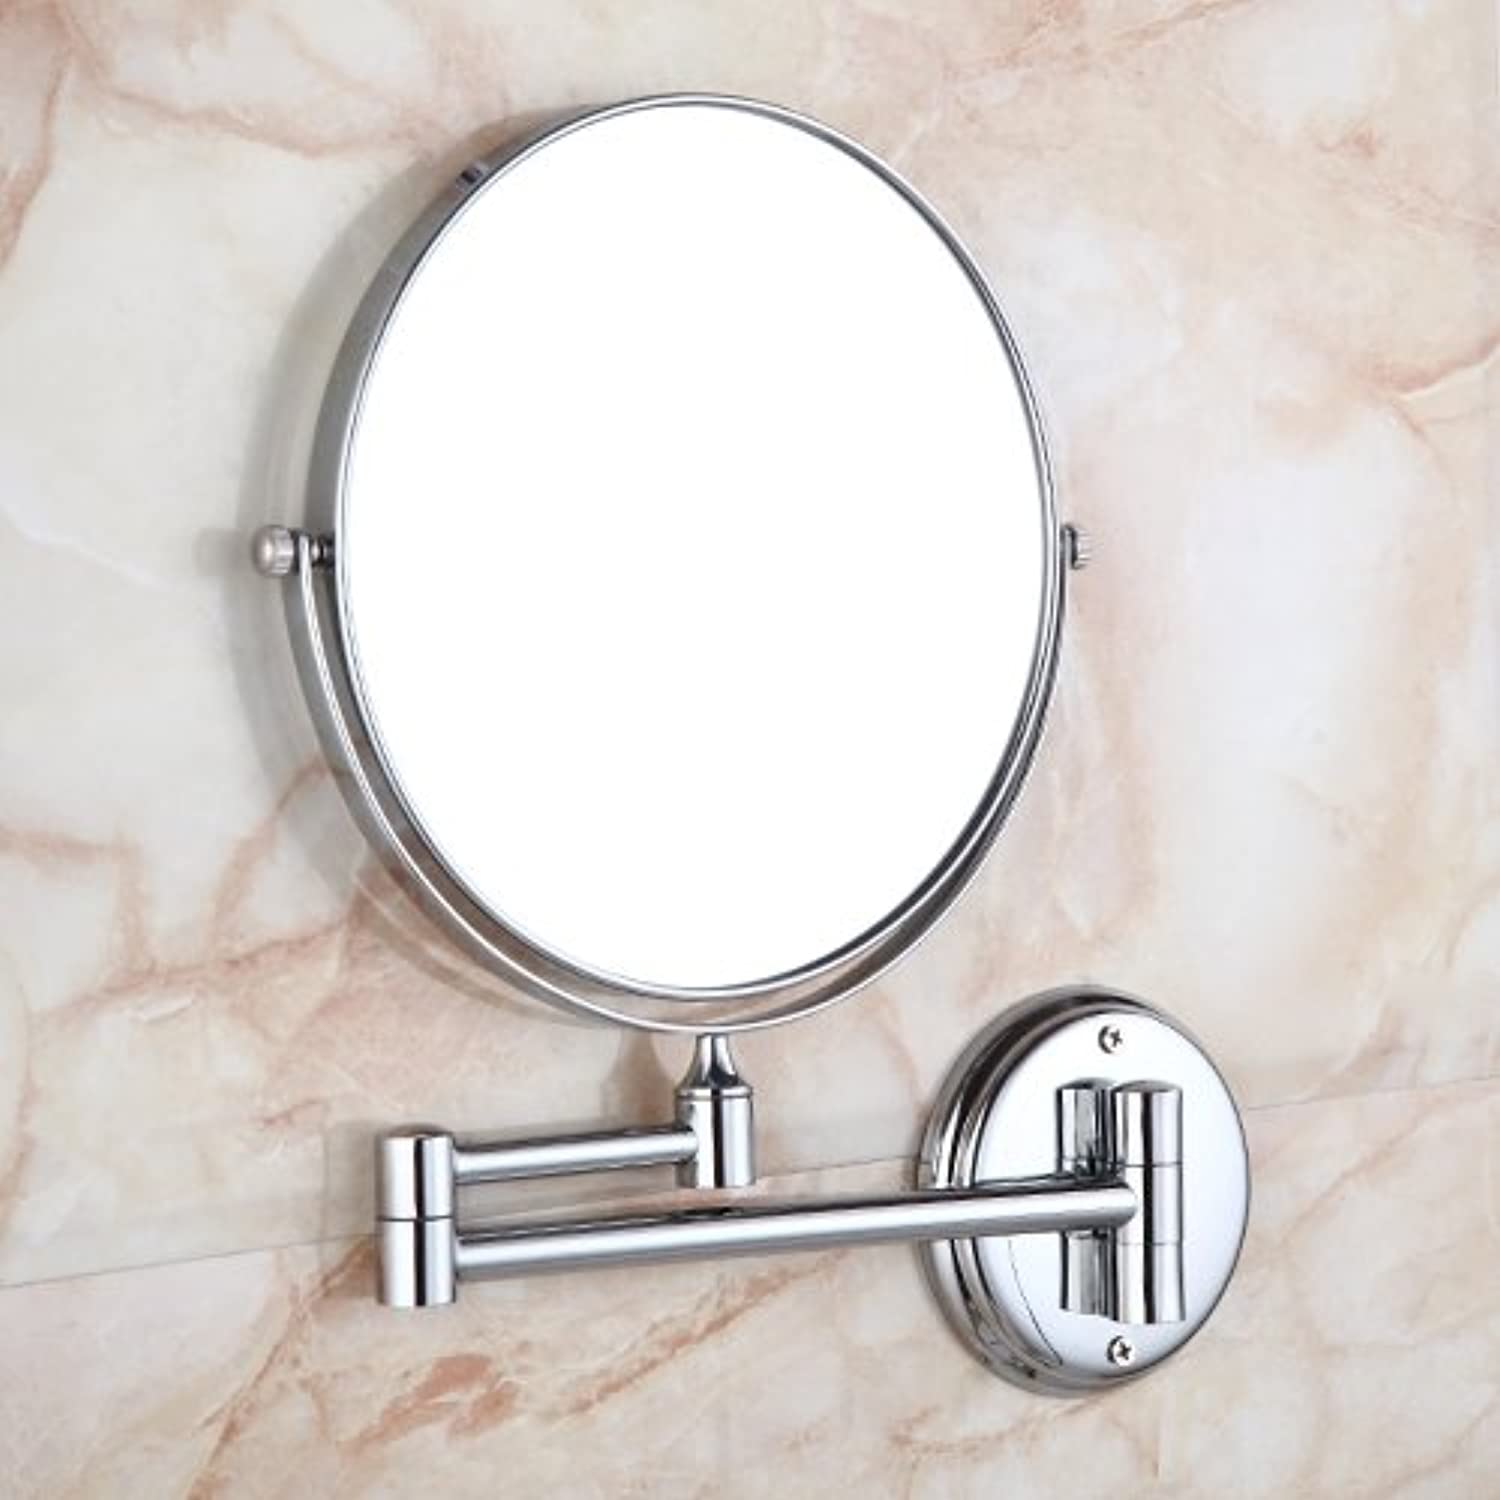 Bathroom vanity mirror double-sided wall mounted folding mirrors toilet telescopic mirror copper mirror mirror-8 inch D